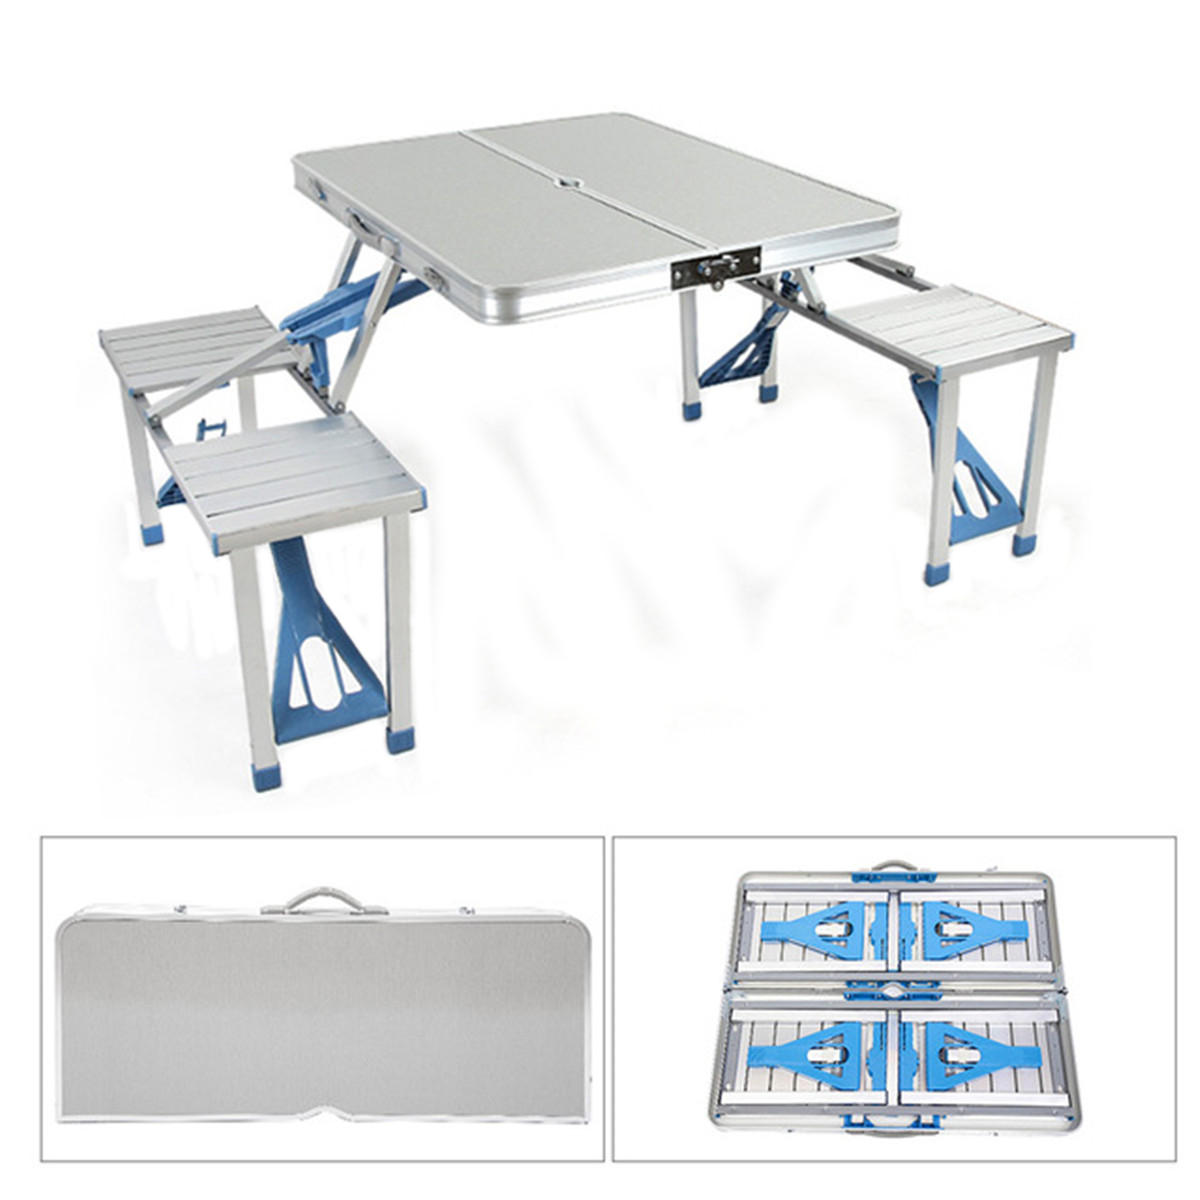 PICNIC TABLE /& 4 CHAIRS OUTDOOR ALUMINIUM PLASTIC FOLDABLE PORTABLE CAMPING BBQ